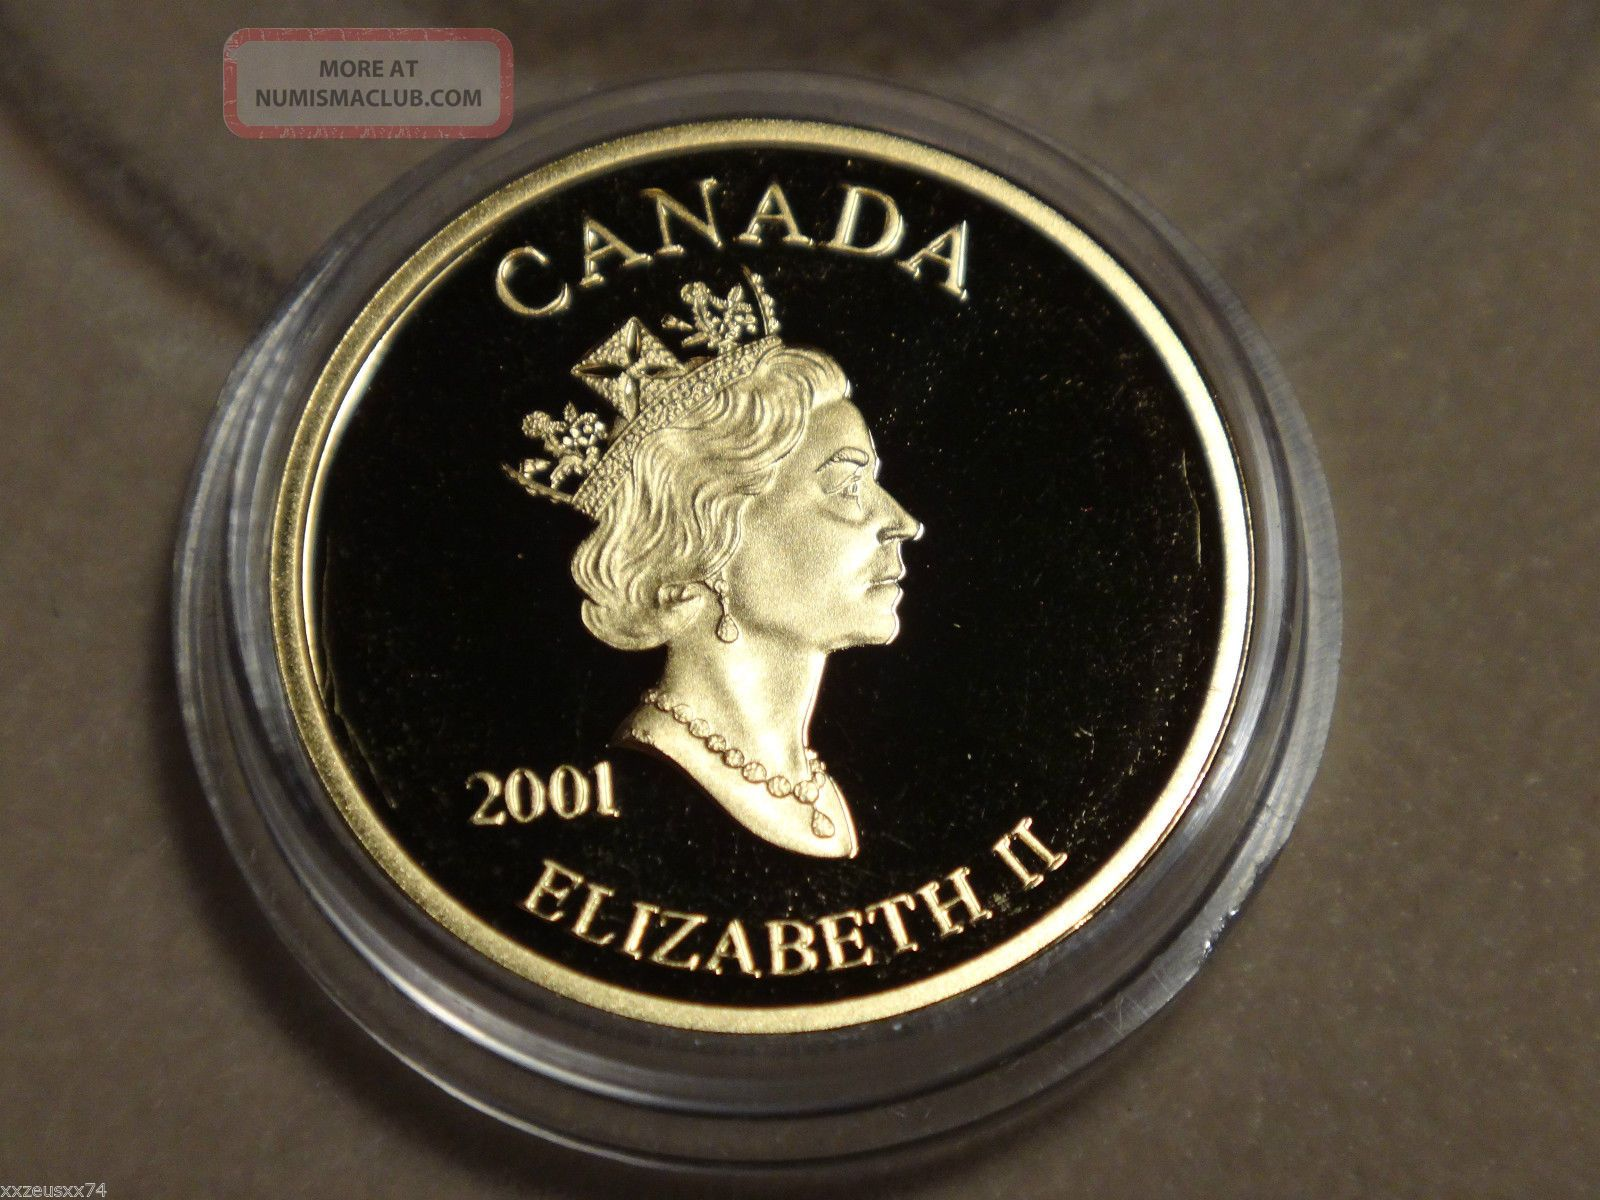 2001 Canada 3 Cent 24k Gold Plated Silver Coin Amp Stamp Set 1